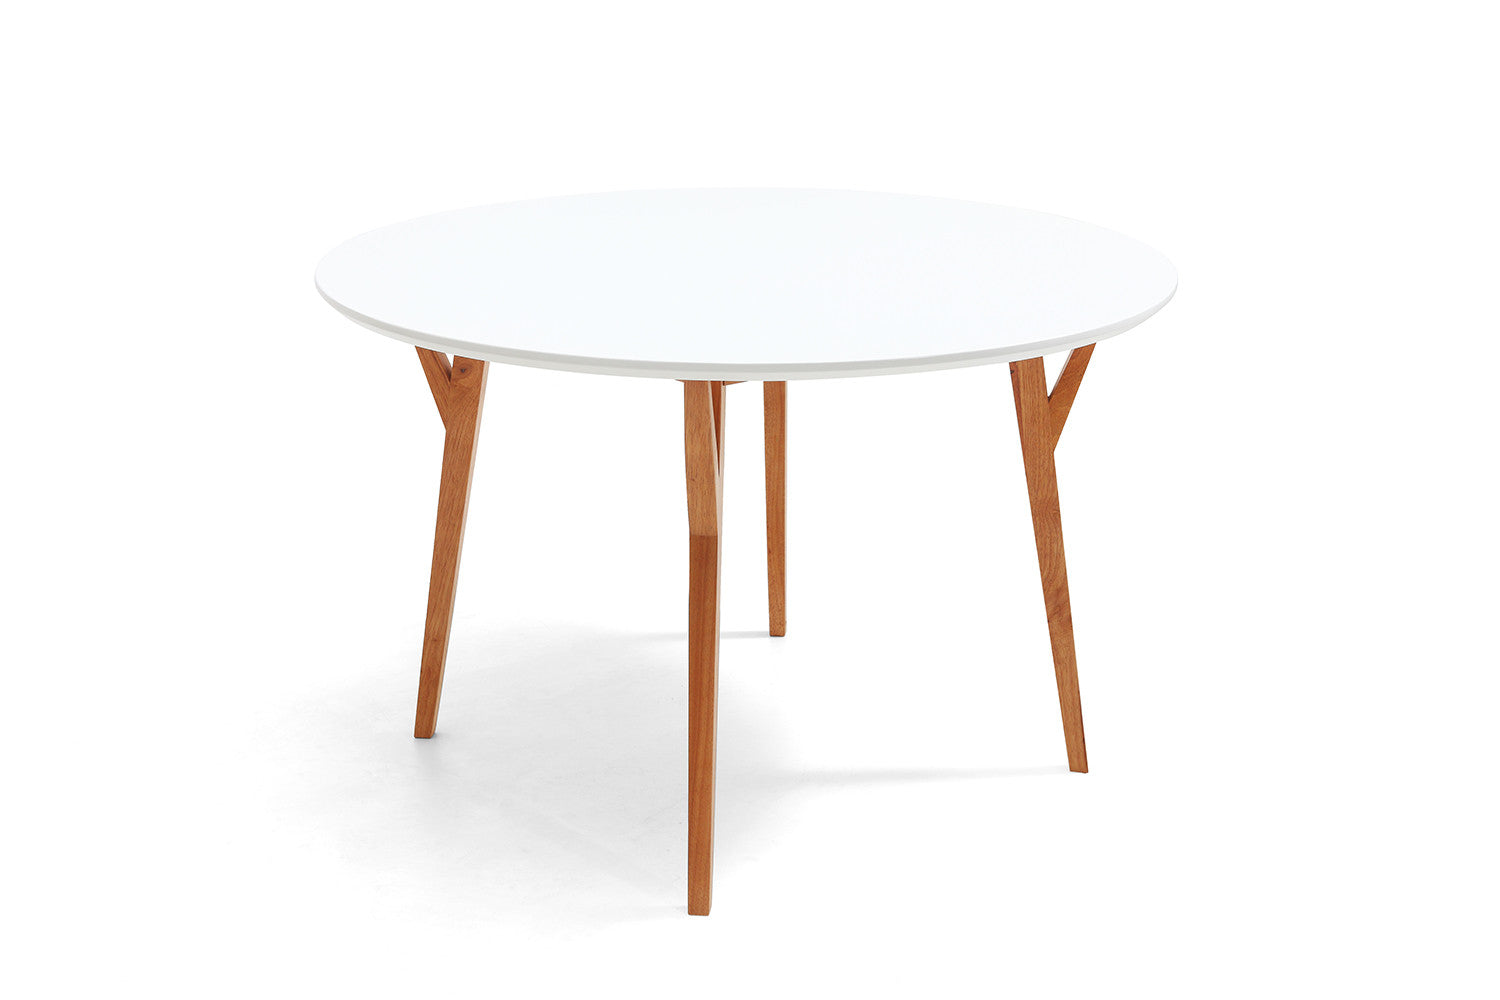 Table de salle manger ronde design scandinave moesa for Table salle a manger jura